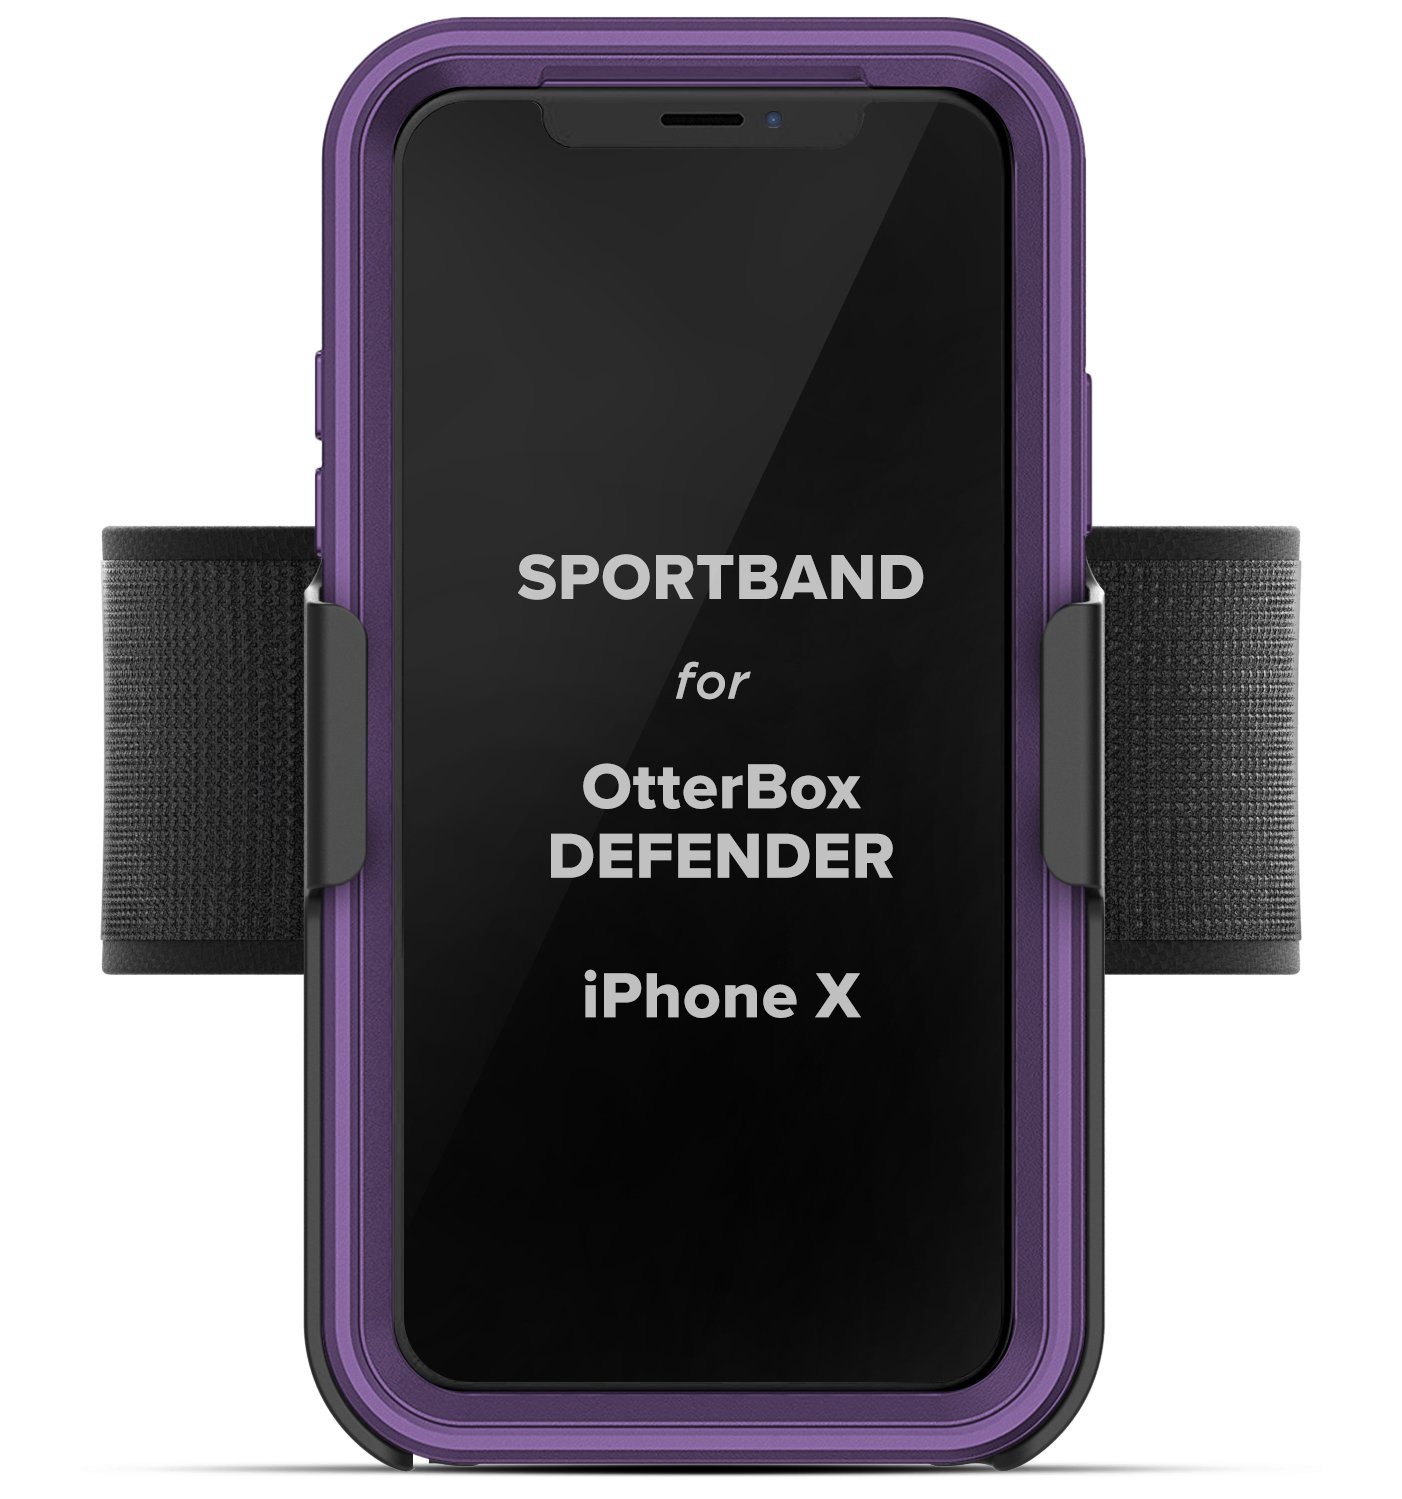 Workout Armband for Otterbox Defender Case, iPhone X (Encased) Adjustable Sports Band (Fits arm sizes XS-XXL) (case not included) AB45[04]